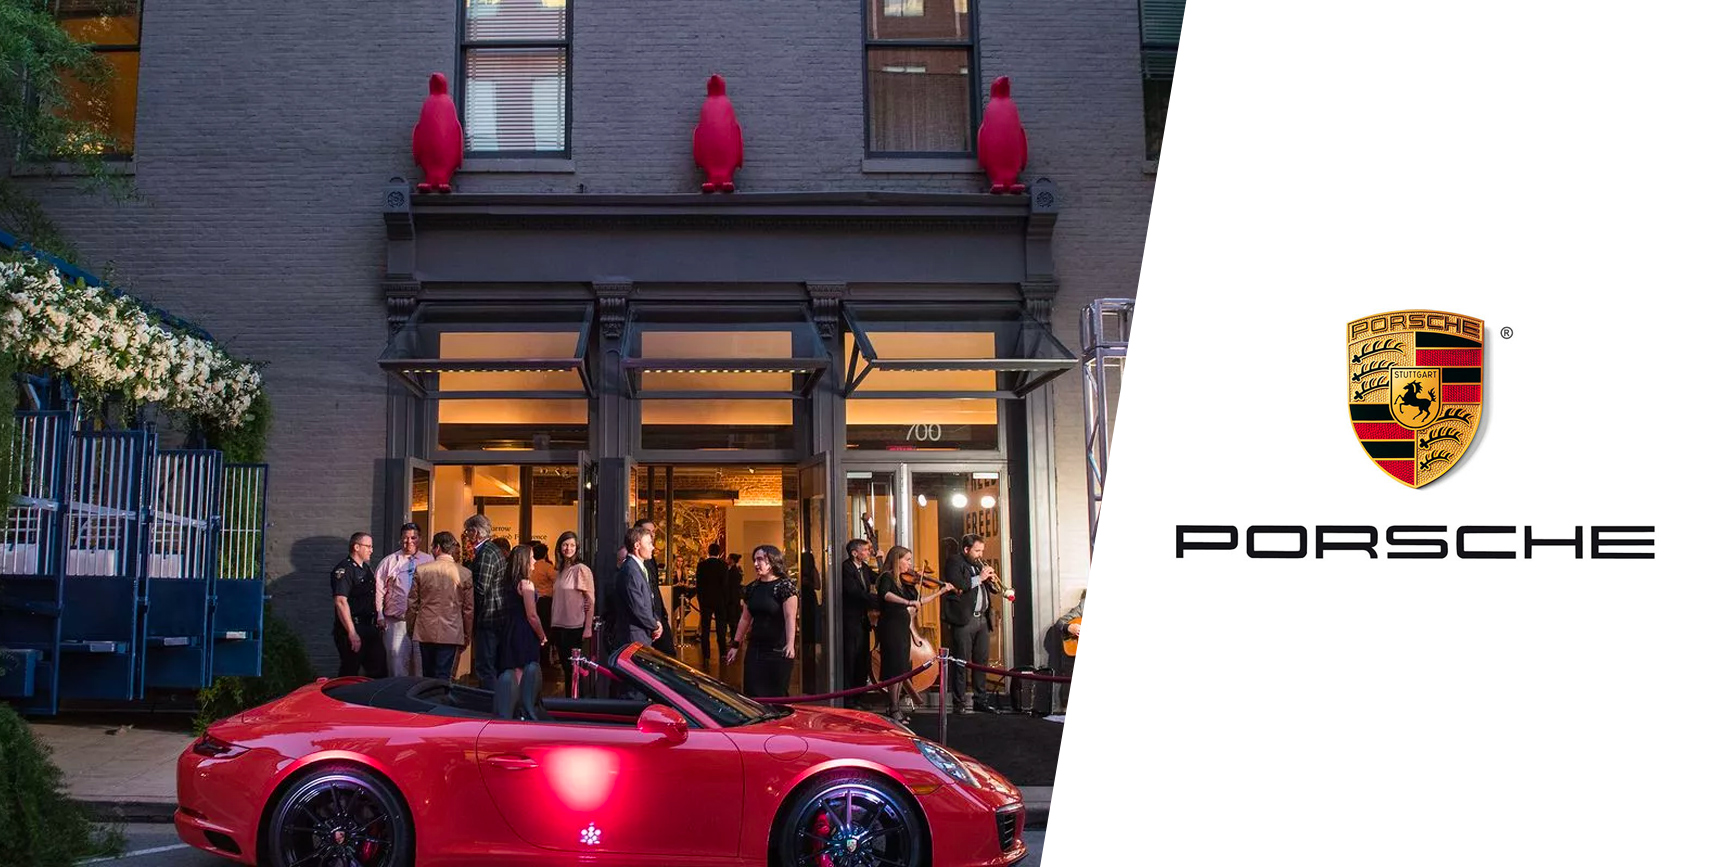 PORSCHE at 21c Museum Hotel - Brand activation in tandem with Kentucky Derby kick-off weekend hosted by Vanity Fair.